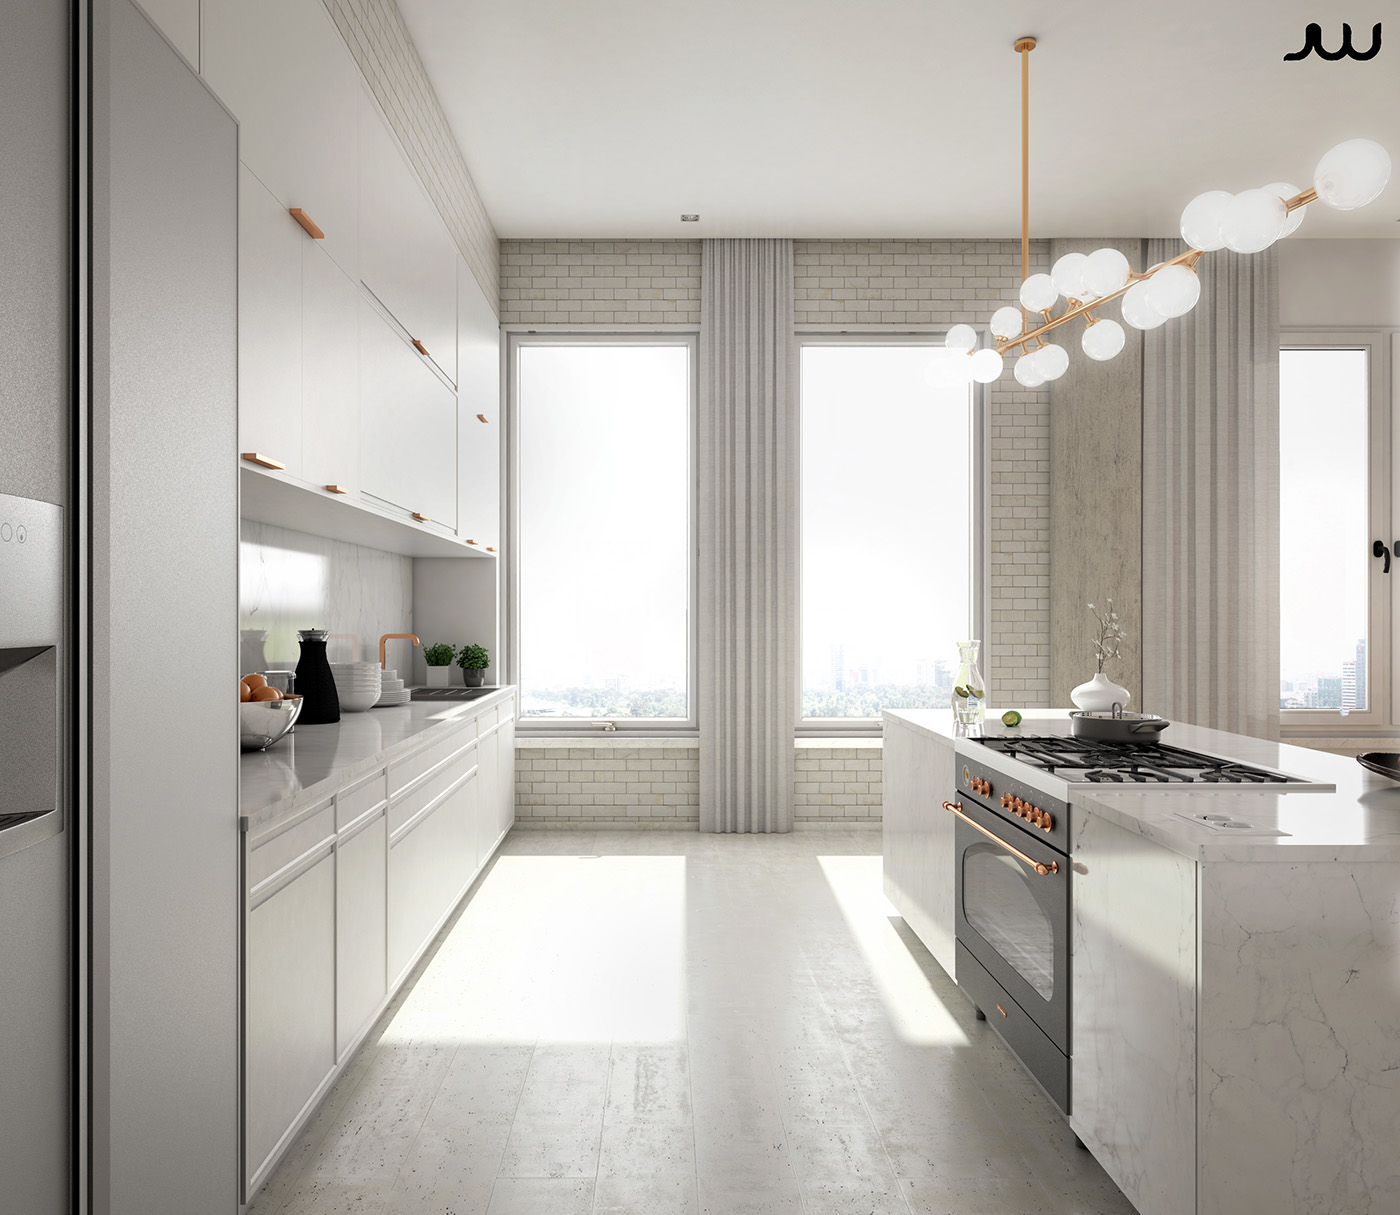 Apartement: New York Apartment (CGI) On Behance